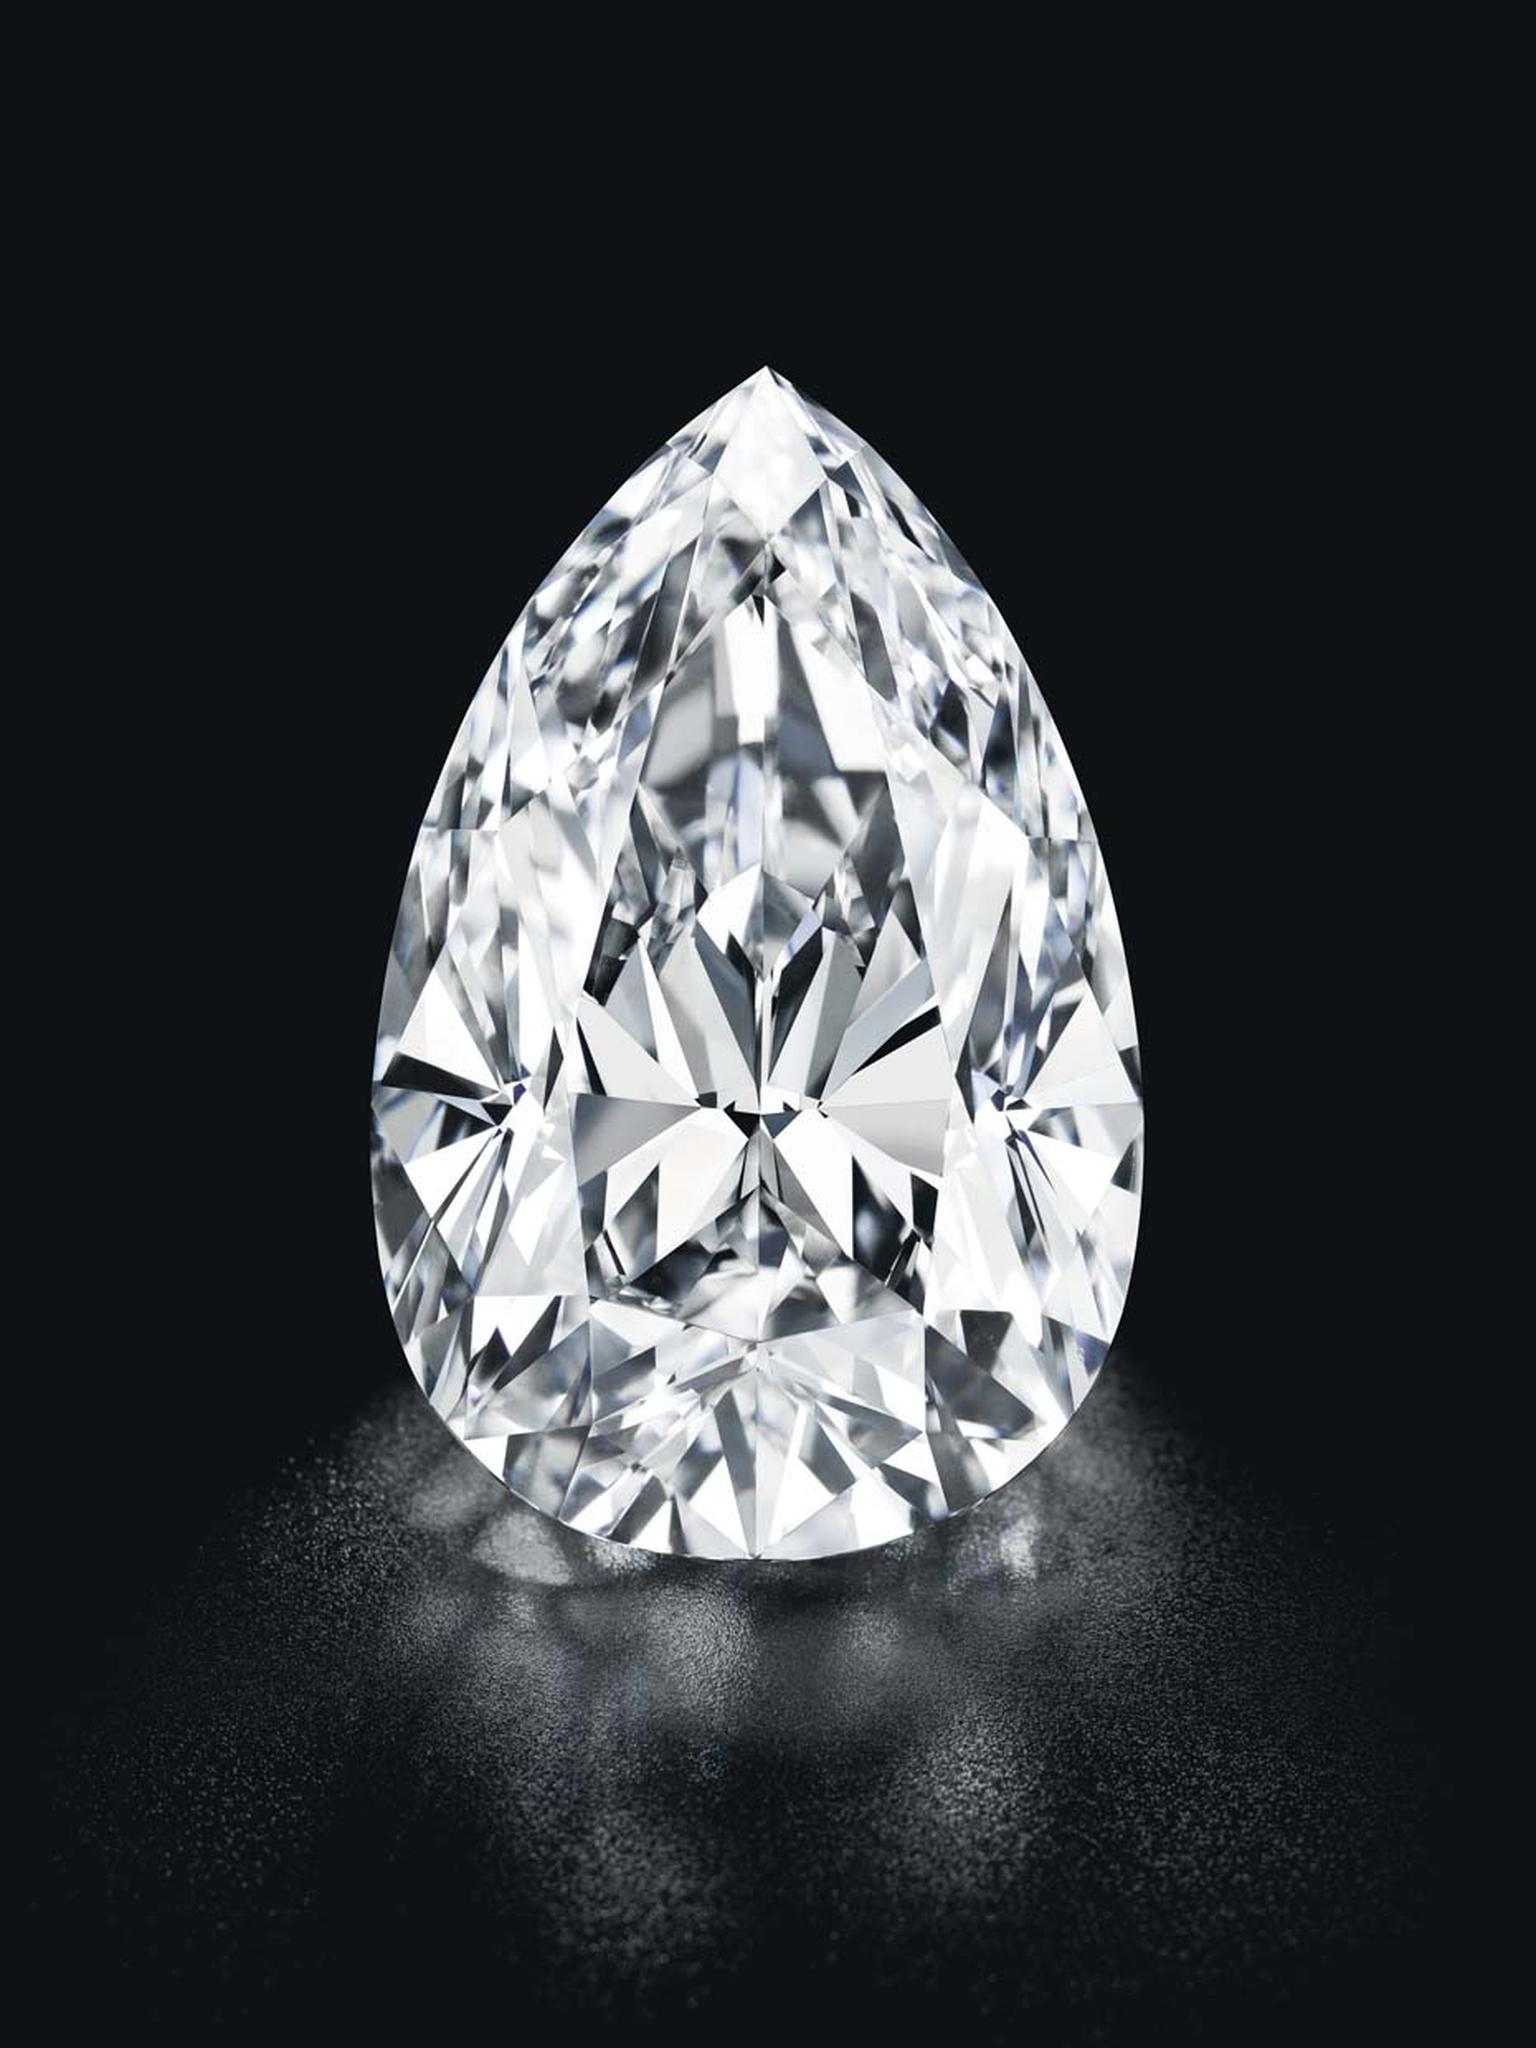 This 55.52ct pear-shaped D flawless diamond sold for $9.03 million at Christie's Geneva as part of its Magnificent Jewels Sale this week.